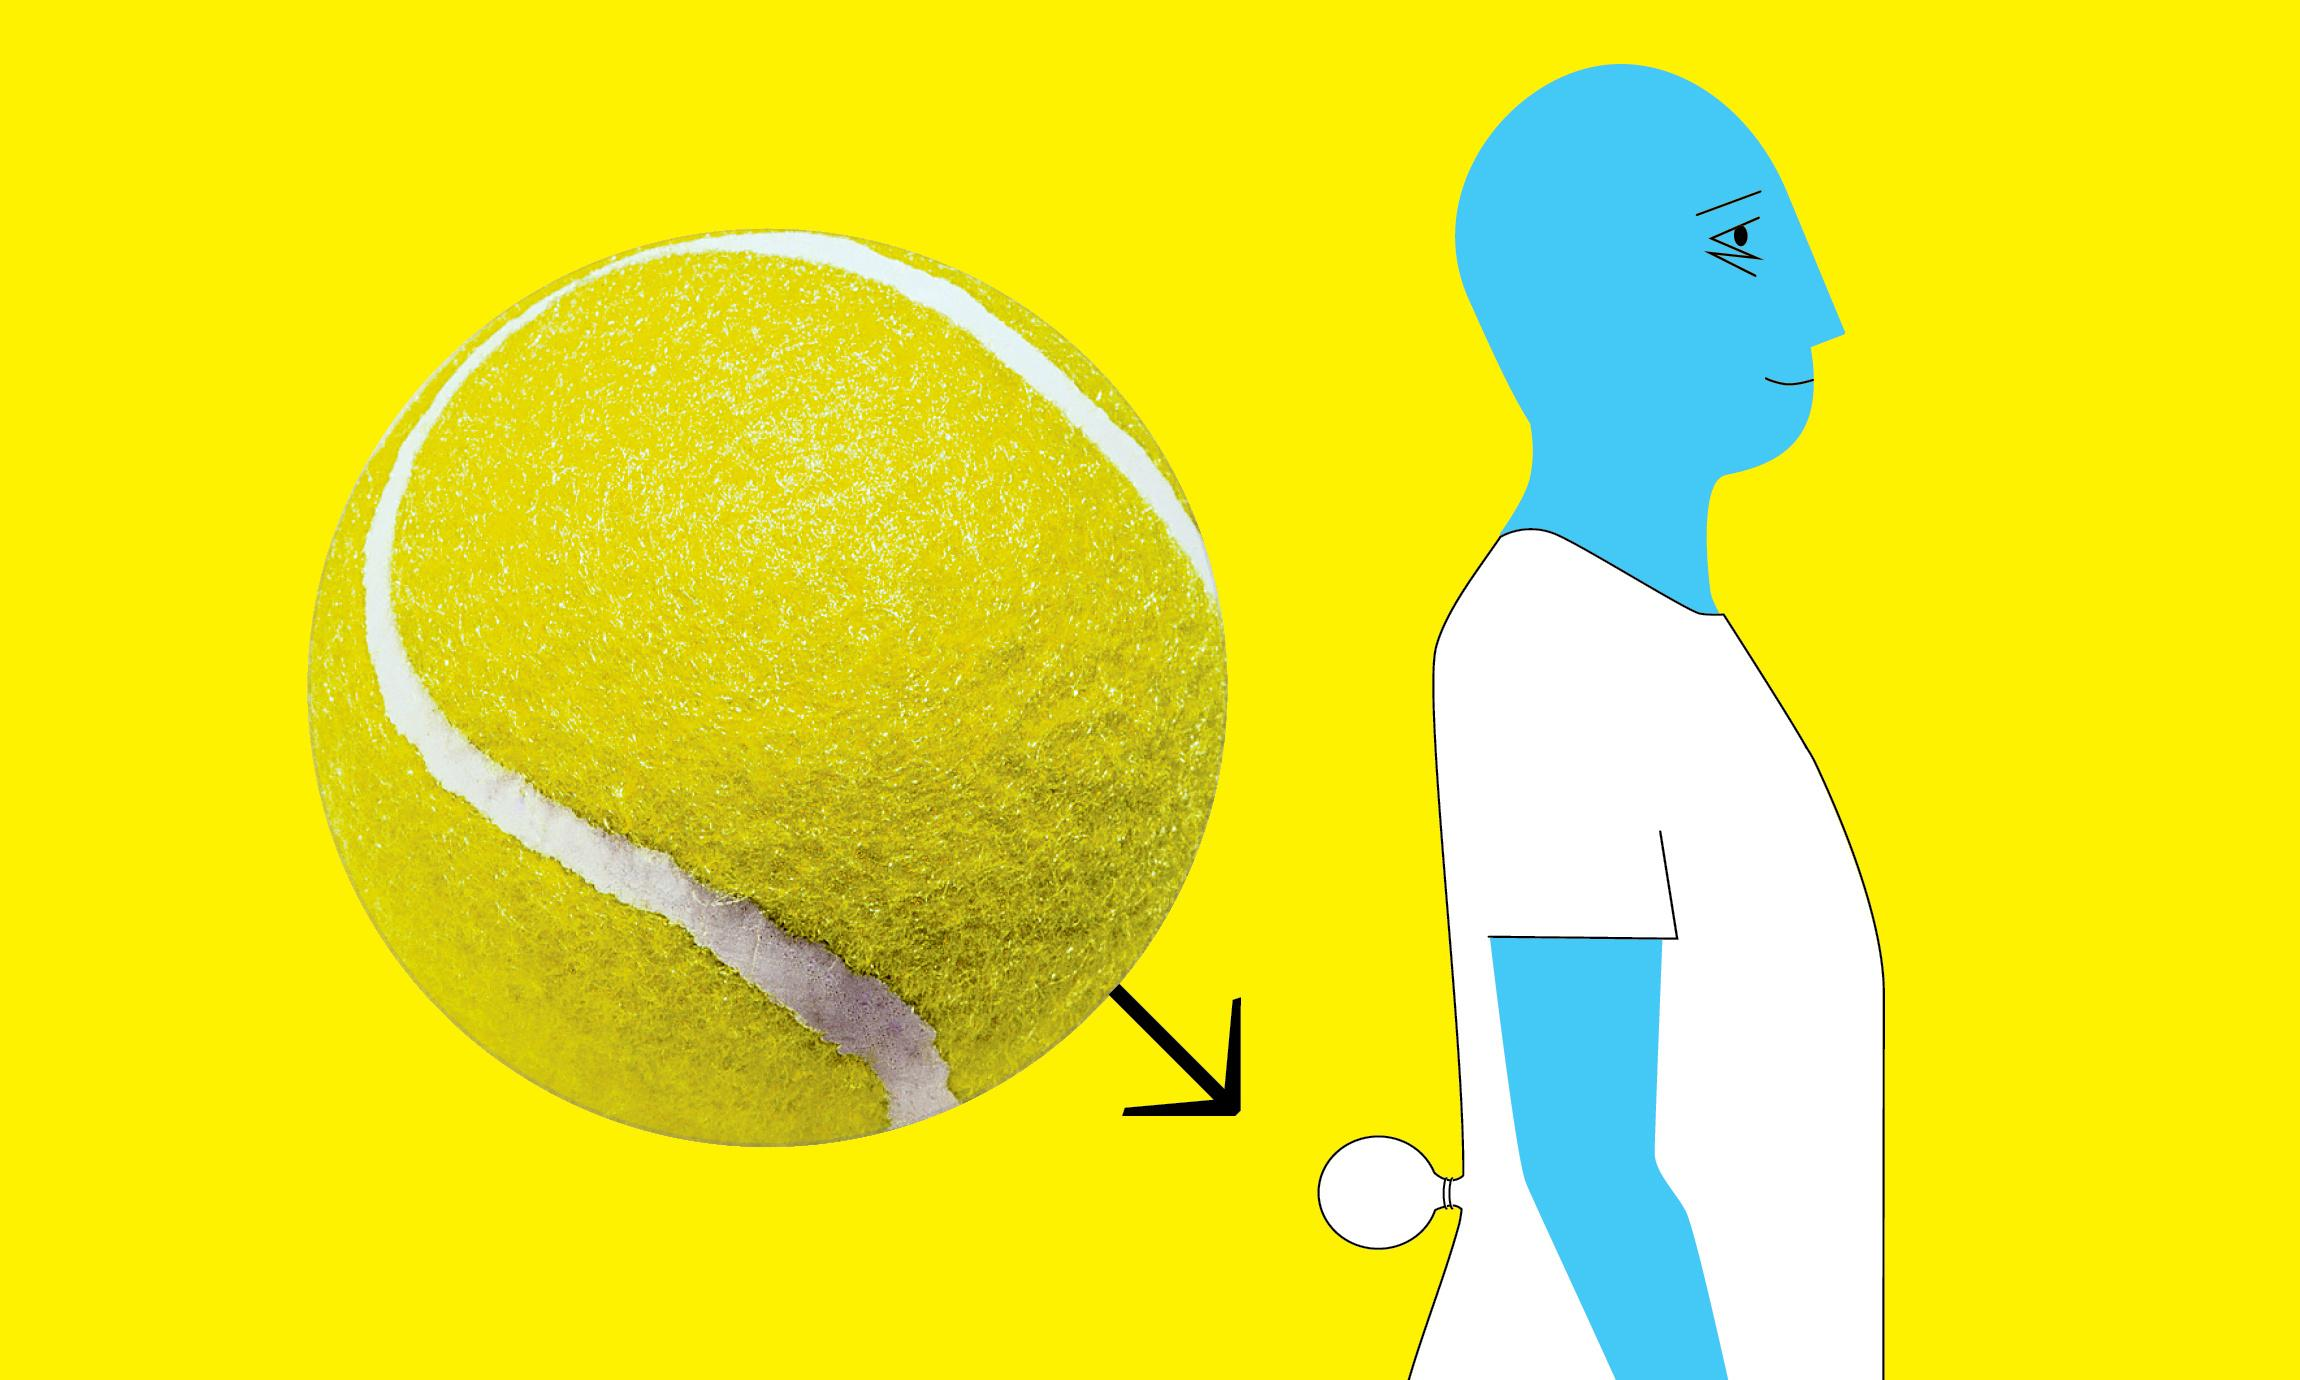 Can a well-positioned tennis ball help prevent snoring?